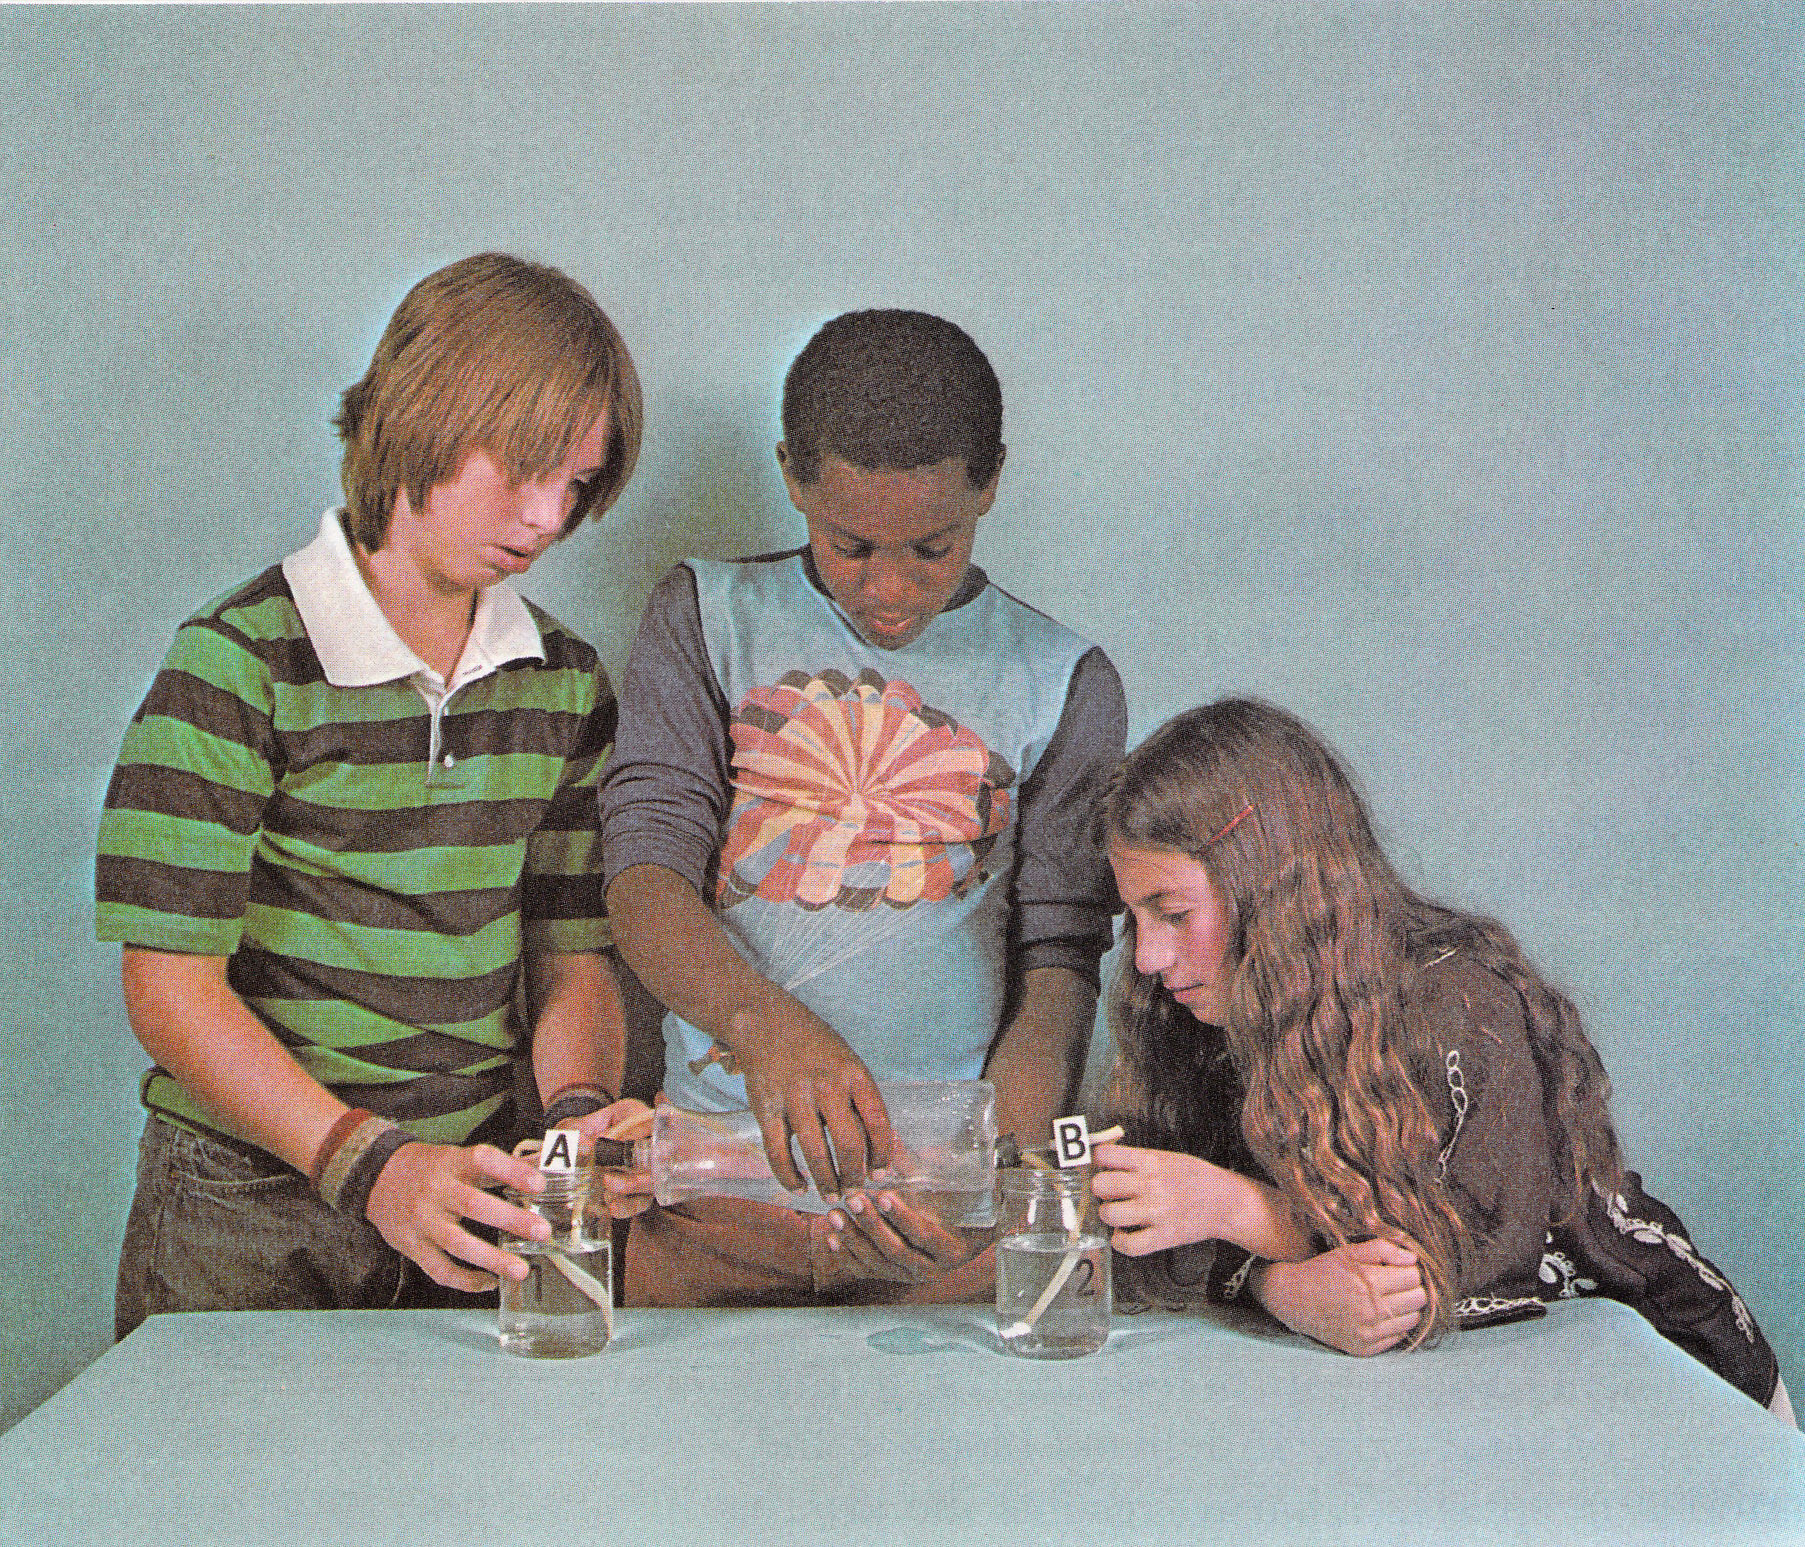 1977-science-textbook_0011_4673765930_o